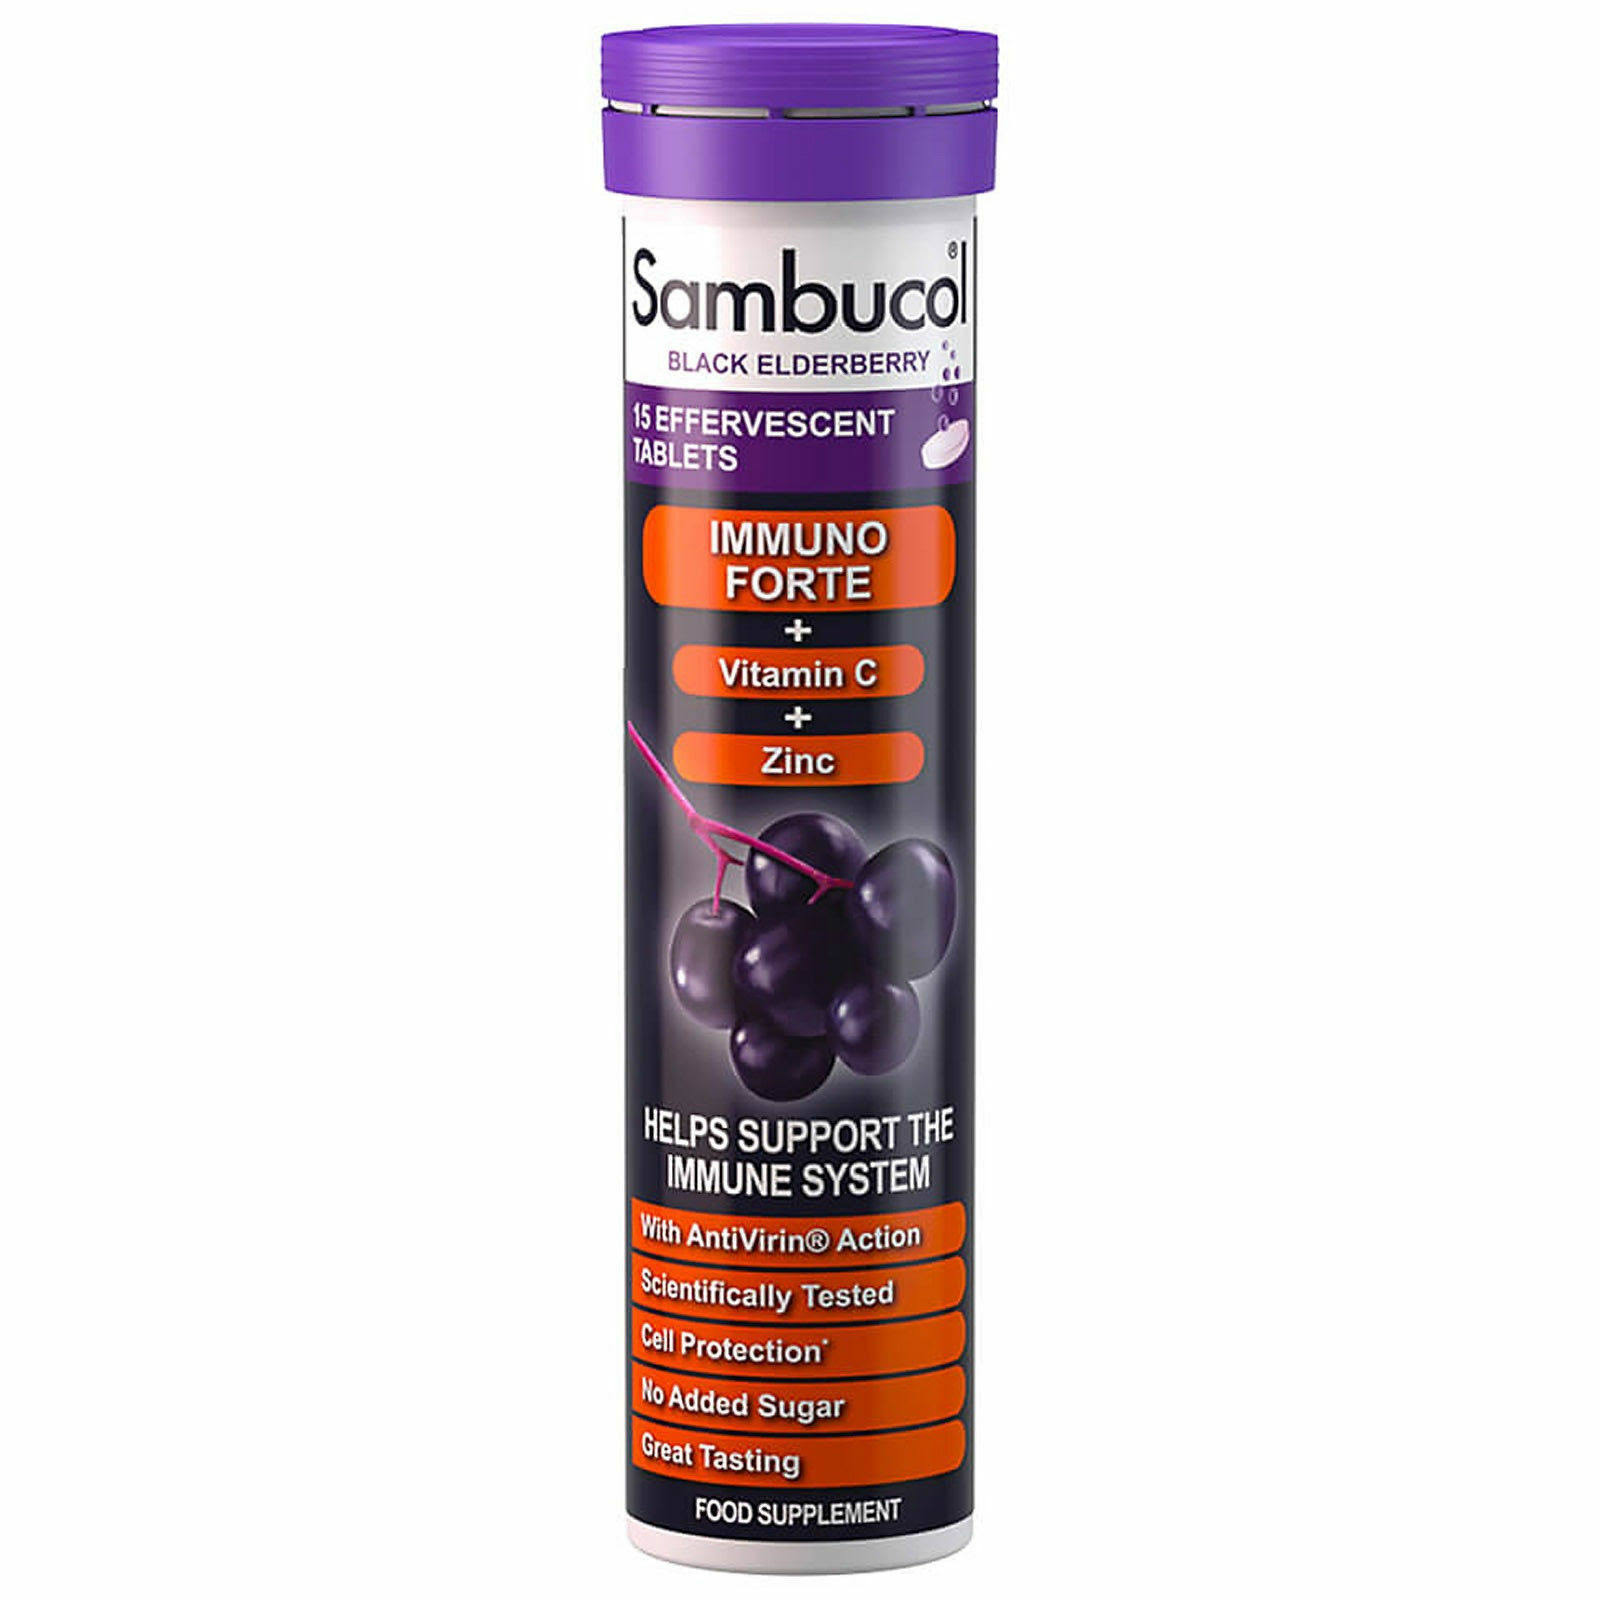 Sambucol Black Elderberry Effervescent Tablets - 15 Tablets